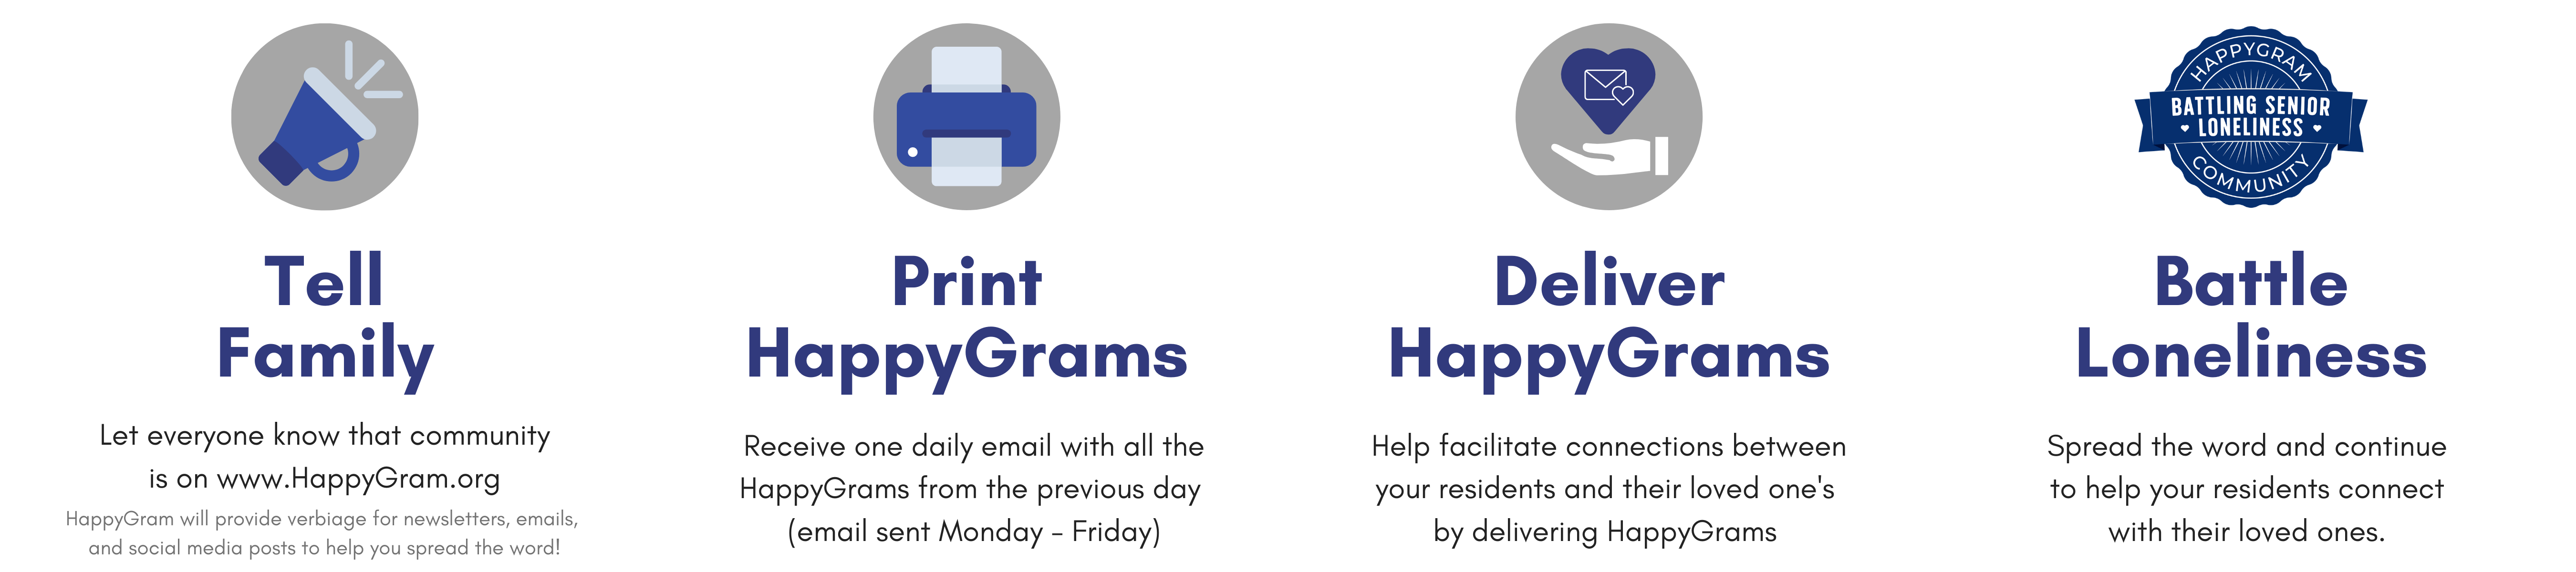 To show senior living community how HappyGram.org works as a card delivery service